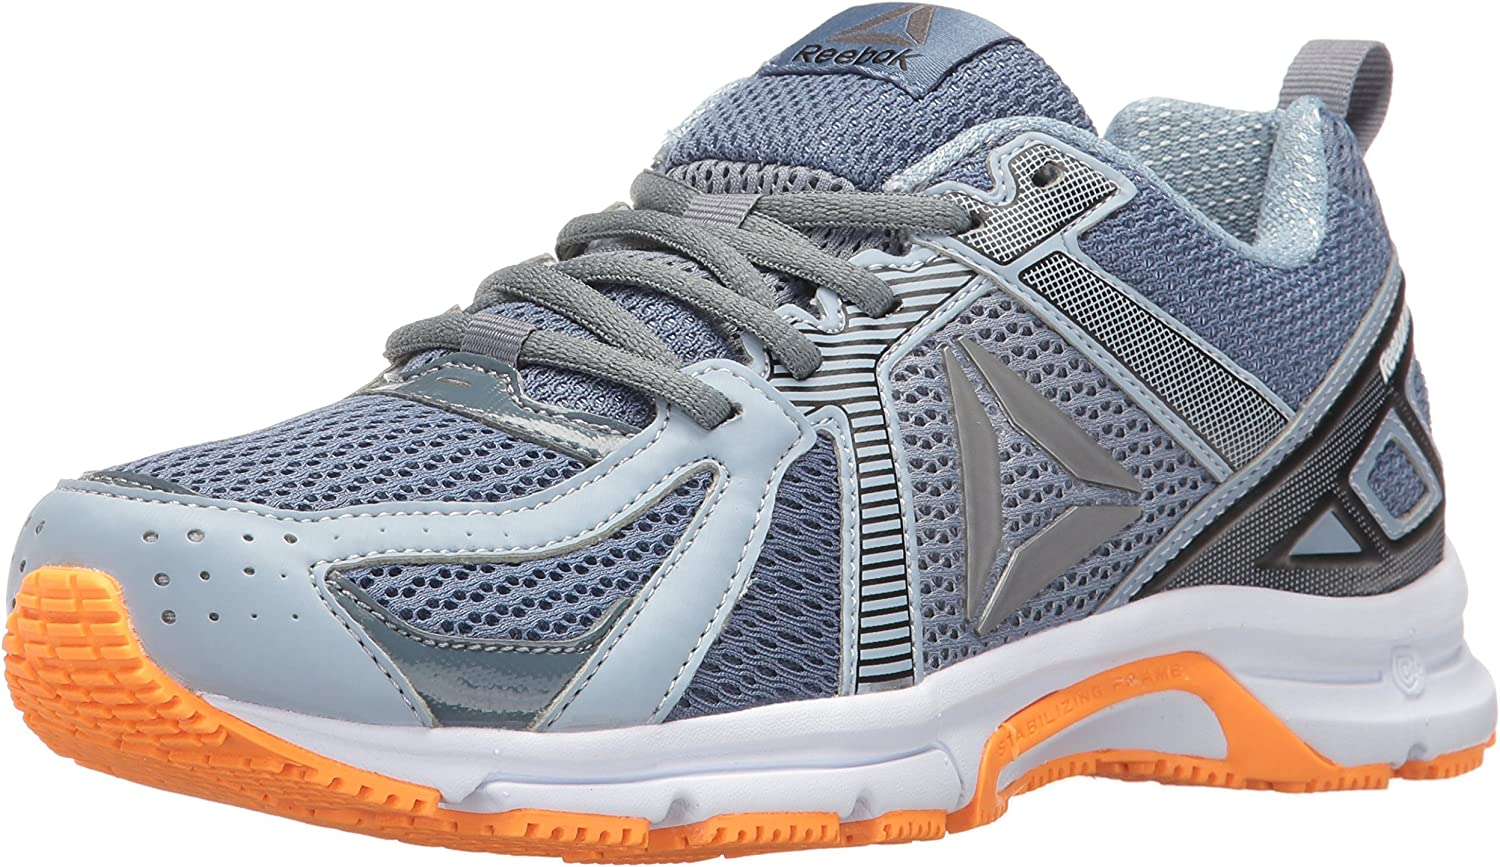 Reebok Women's Runner MT Running shoes